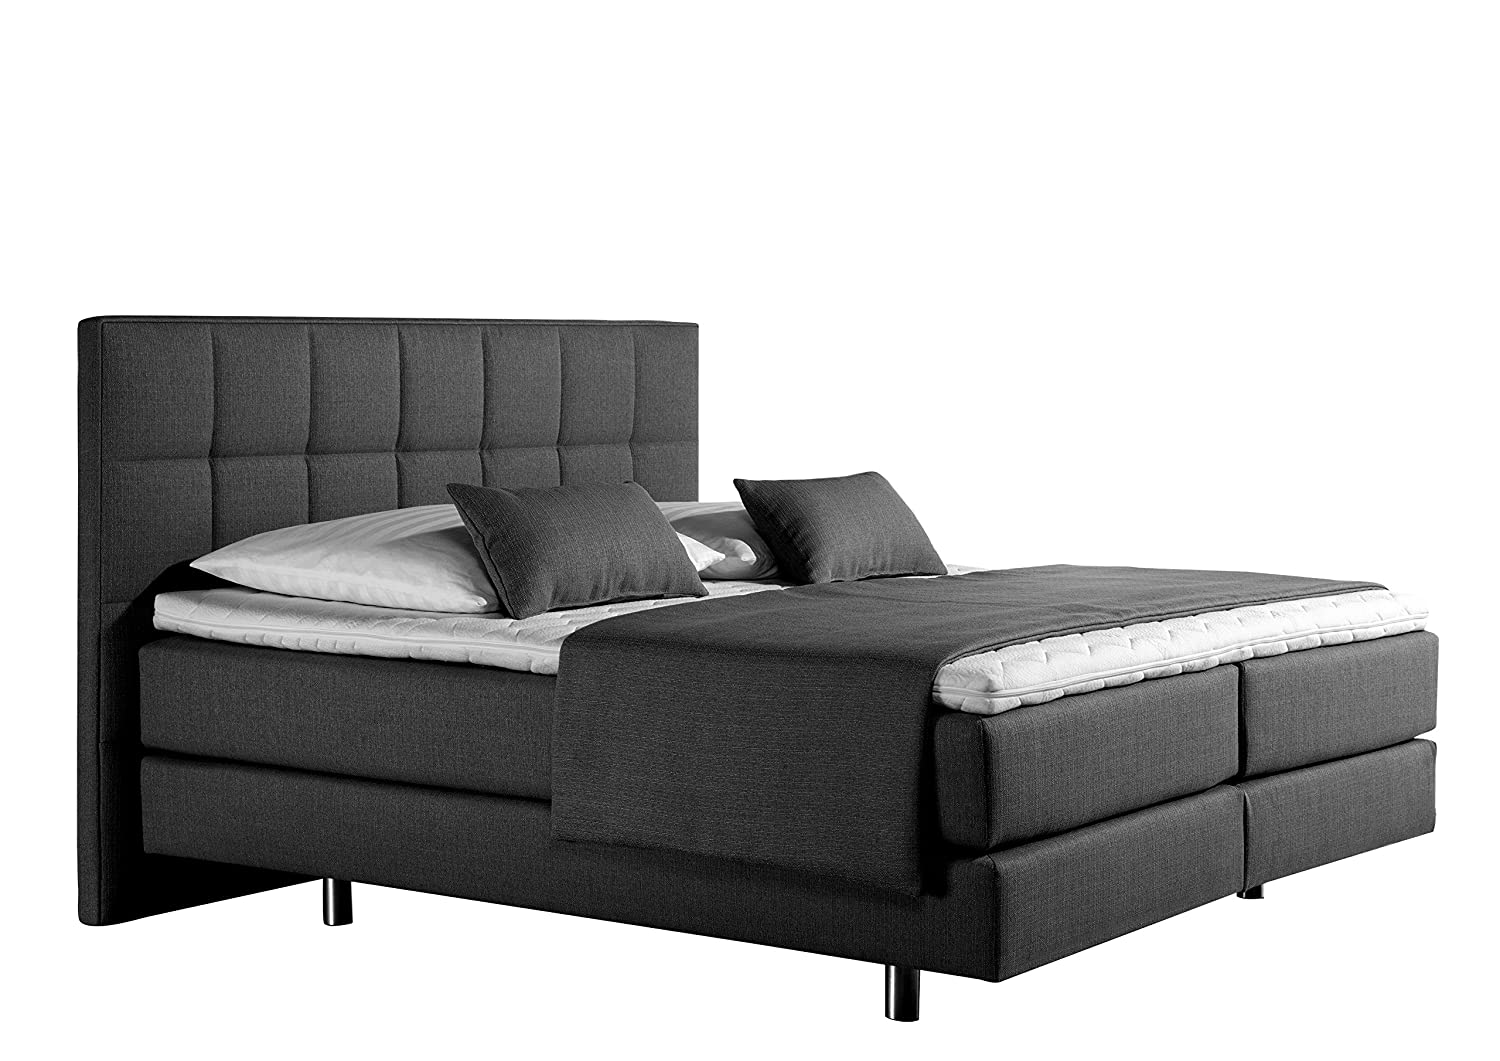 Maintal Betten 237465-3159 Boxspringbett Neon 180 x 200 cm, Strukturstoff anthrazit